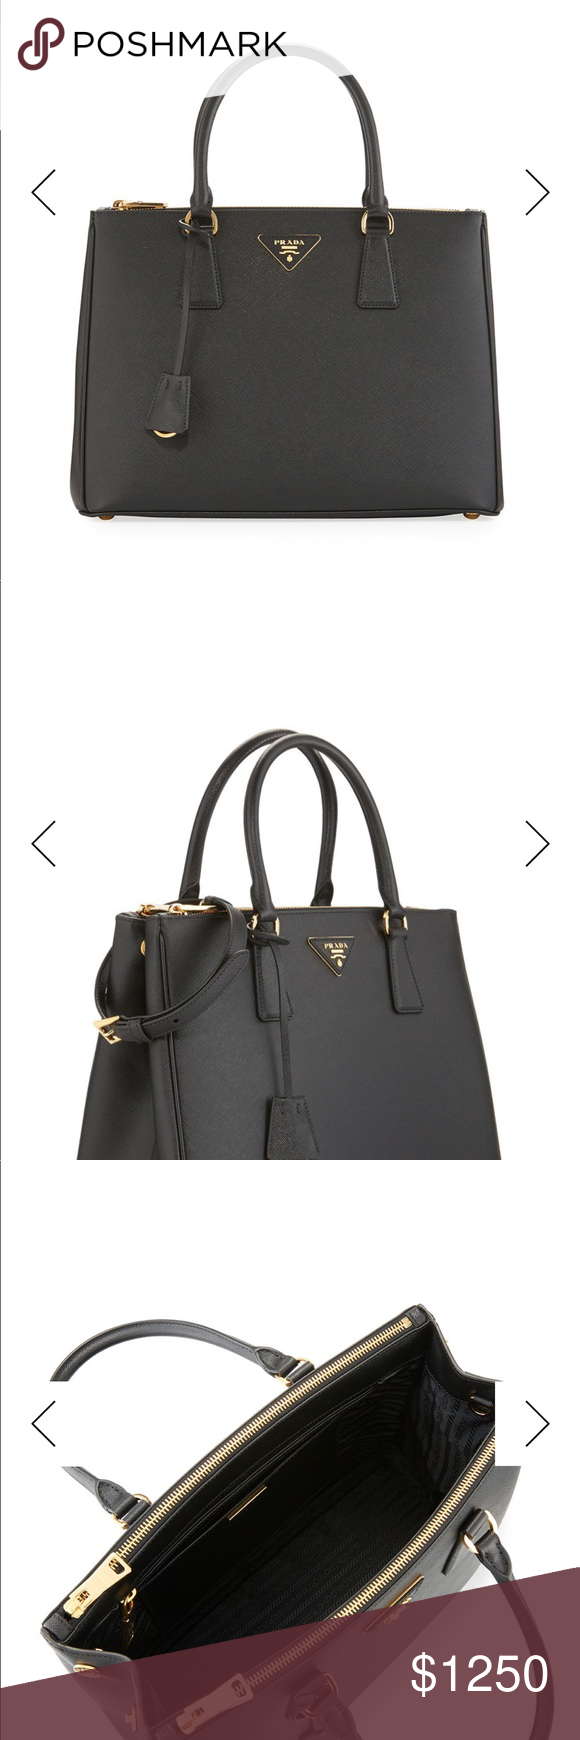 f1a766168268 Prada Galleria Medium Saffiano Tote Bag Ex wife used for maybe 2 months. No  imperfections at all